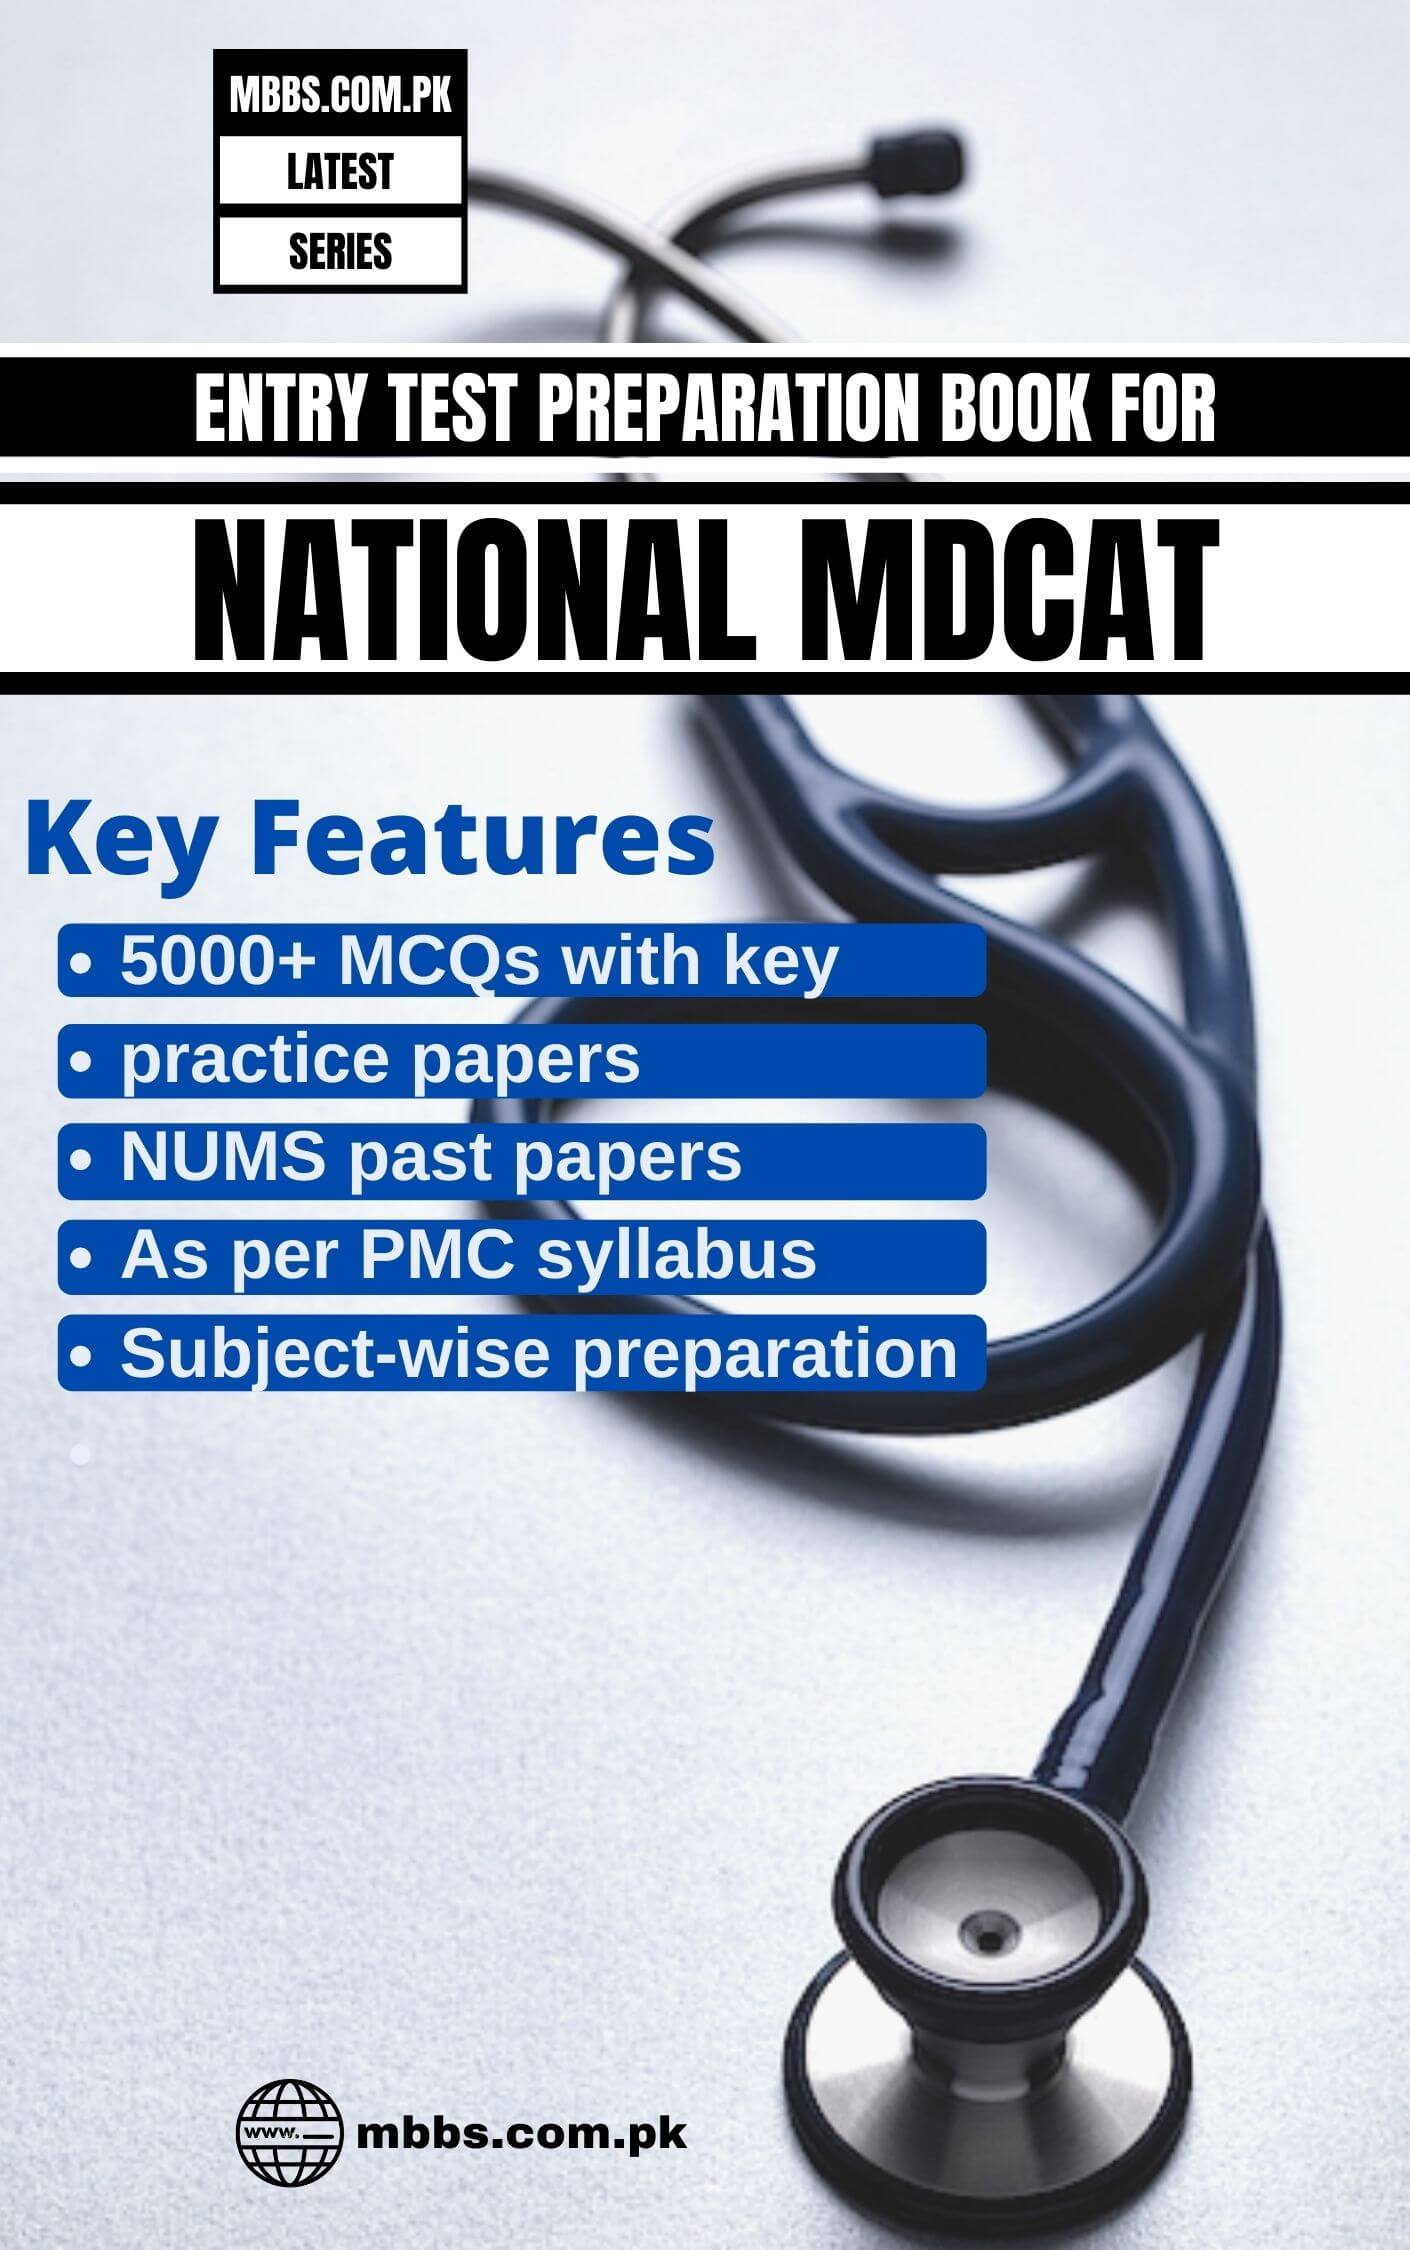 NATIONAL MDCAT Book